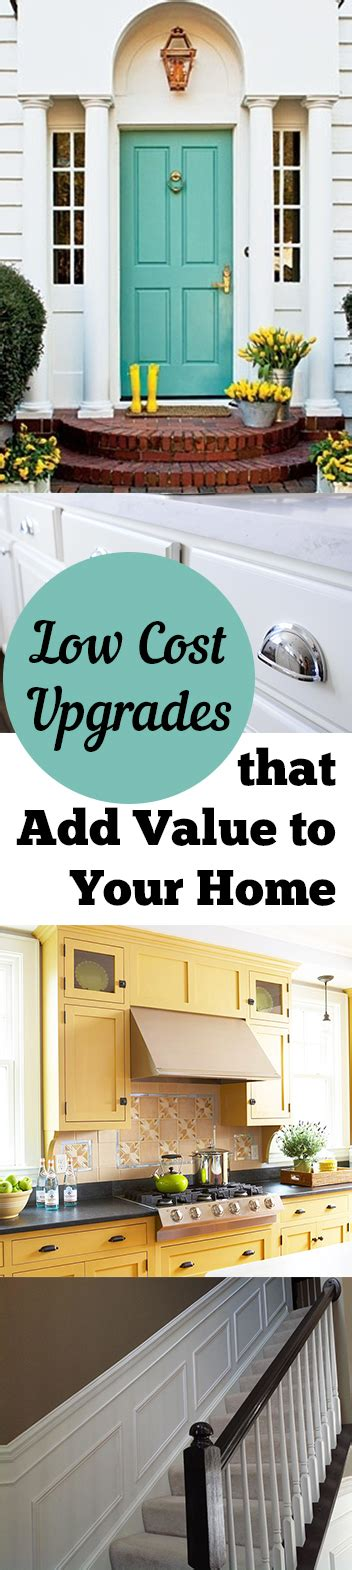 low cost upgrades that add value to your home my list of